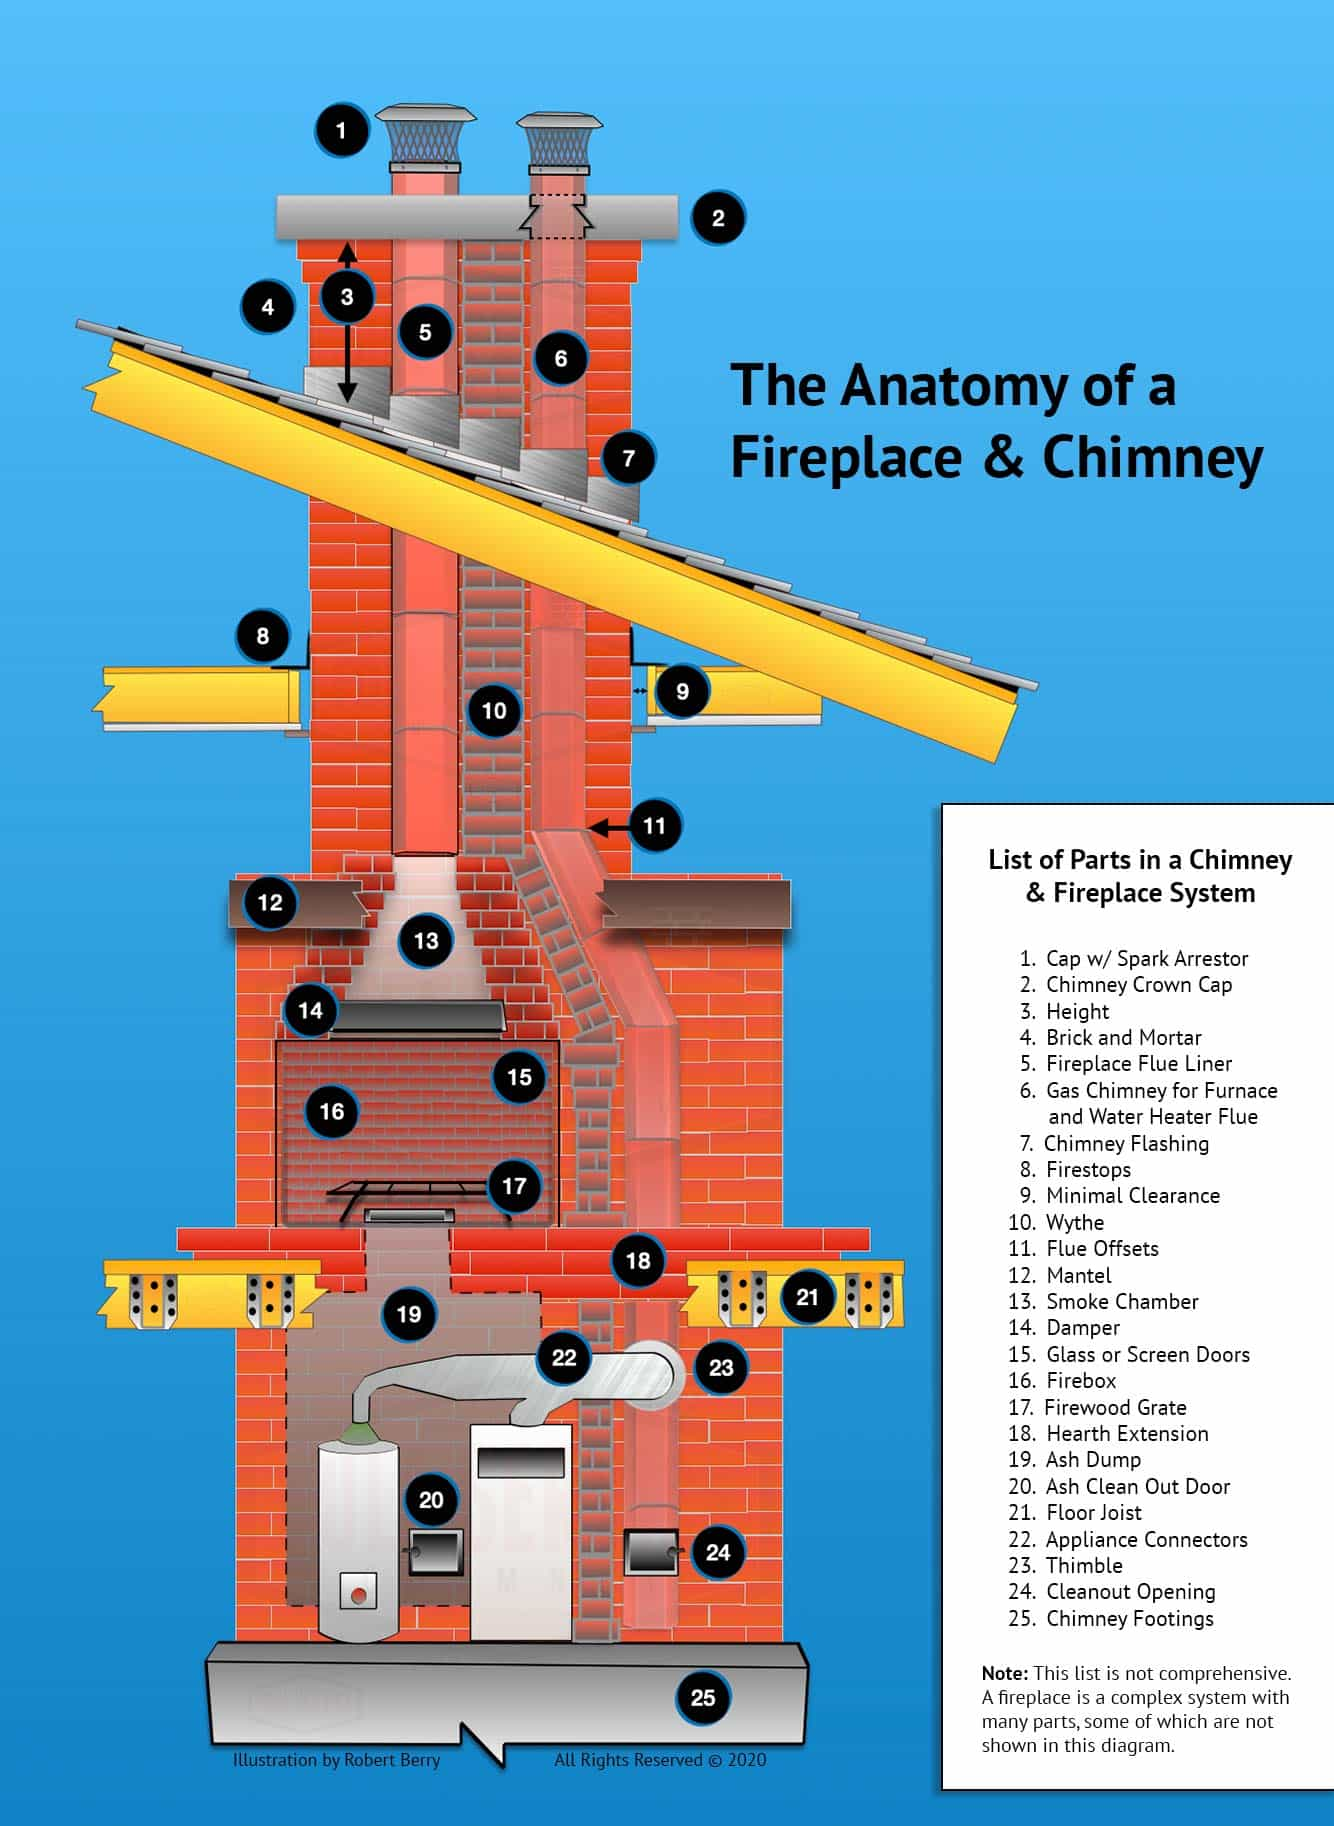 List Parts of Chimney Fireplace Anatomy Diagram